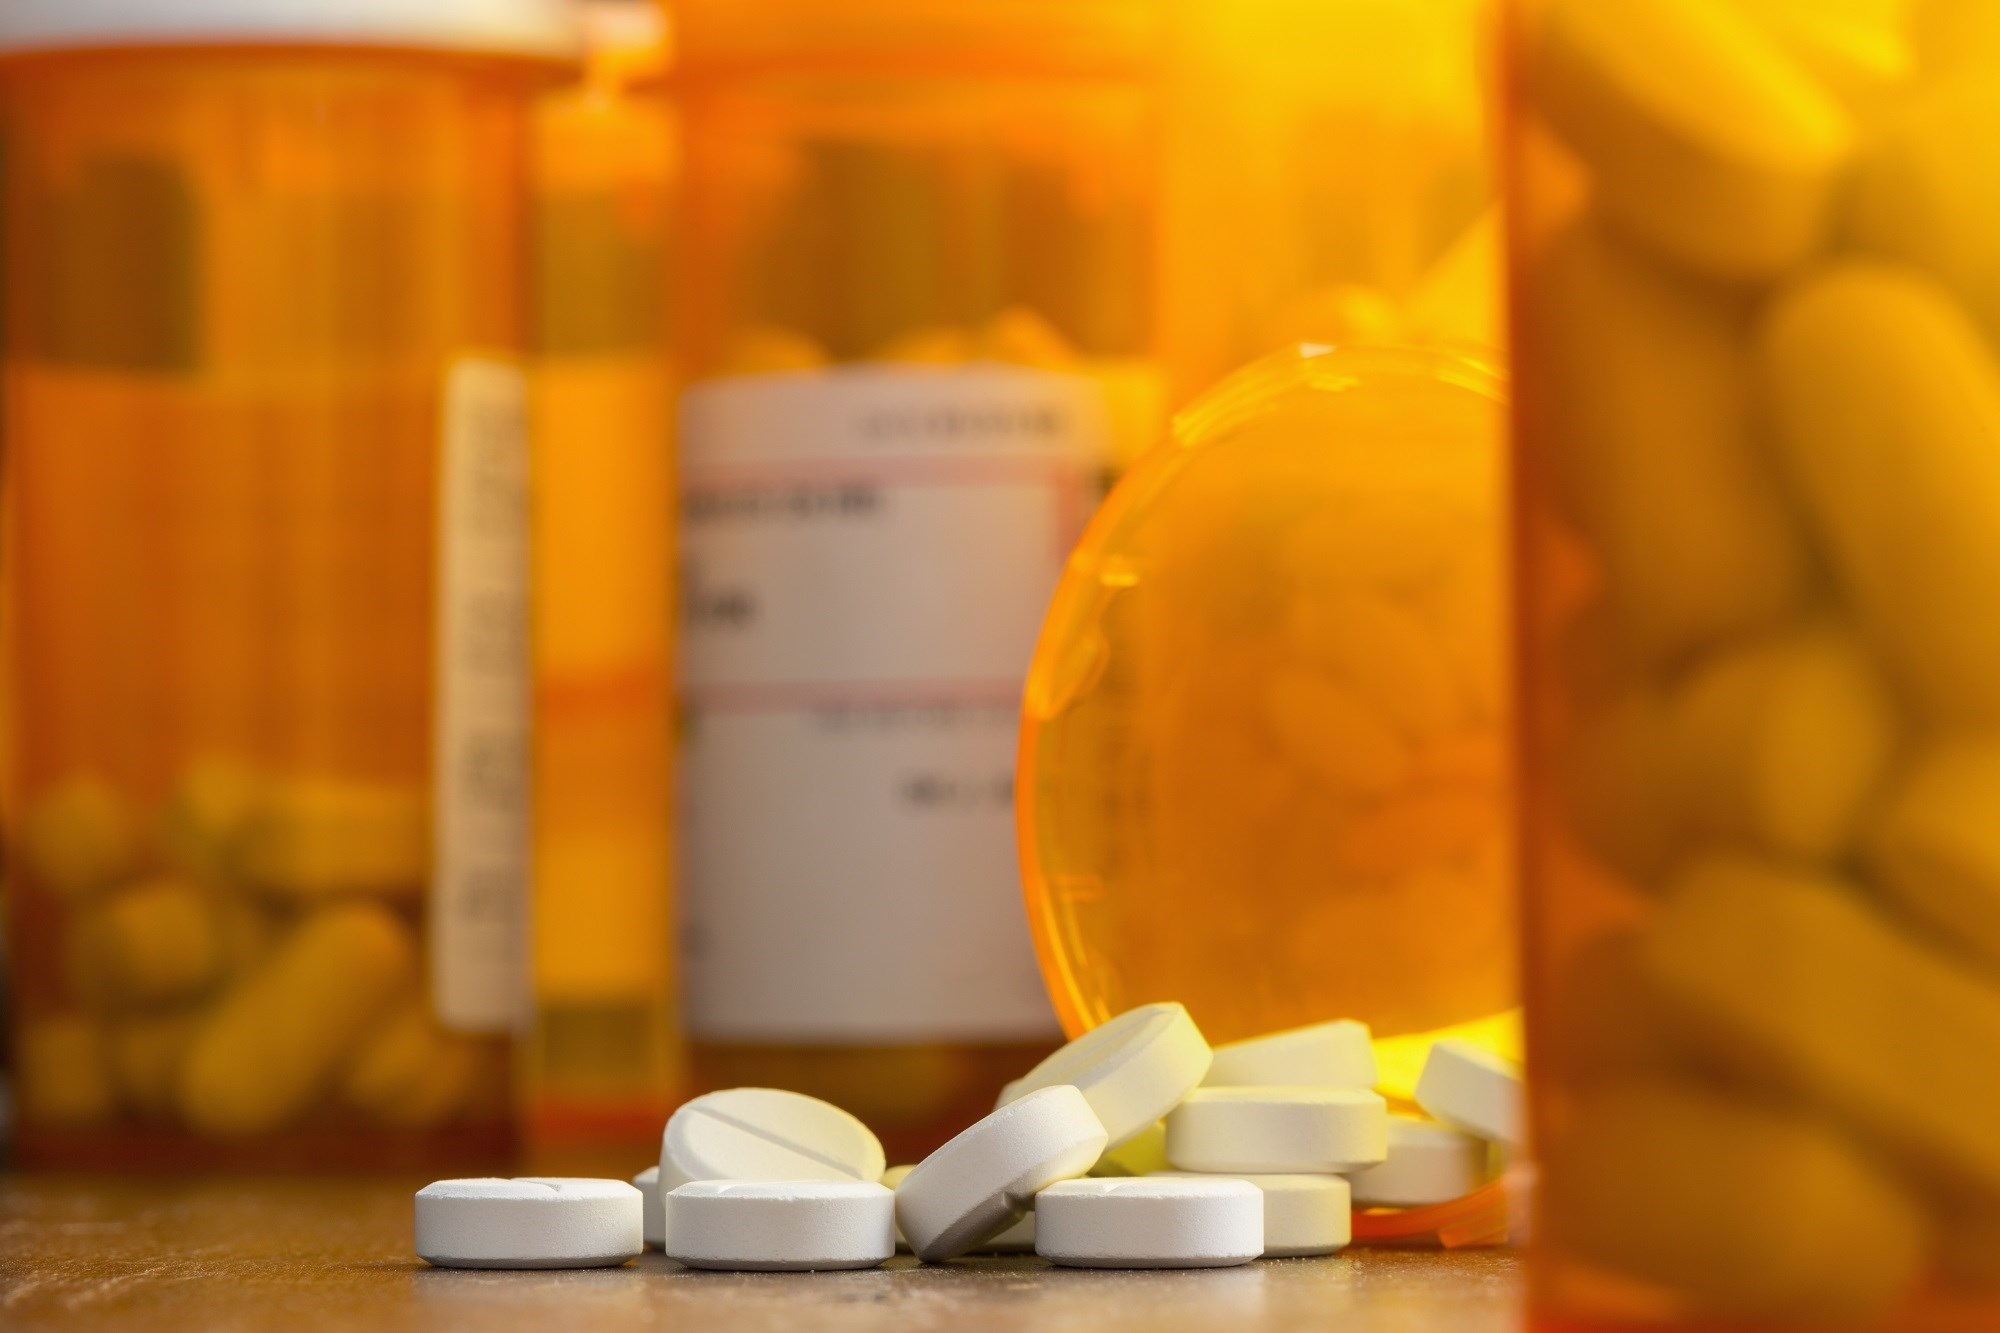 Opioid Use Varies by State Among Patients With Osteoarthritis